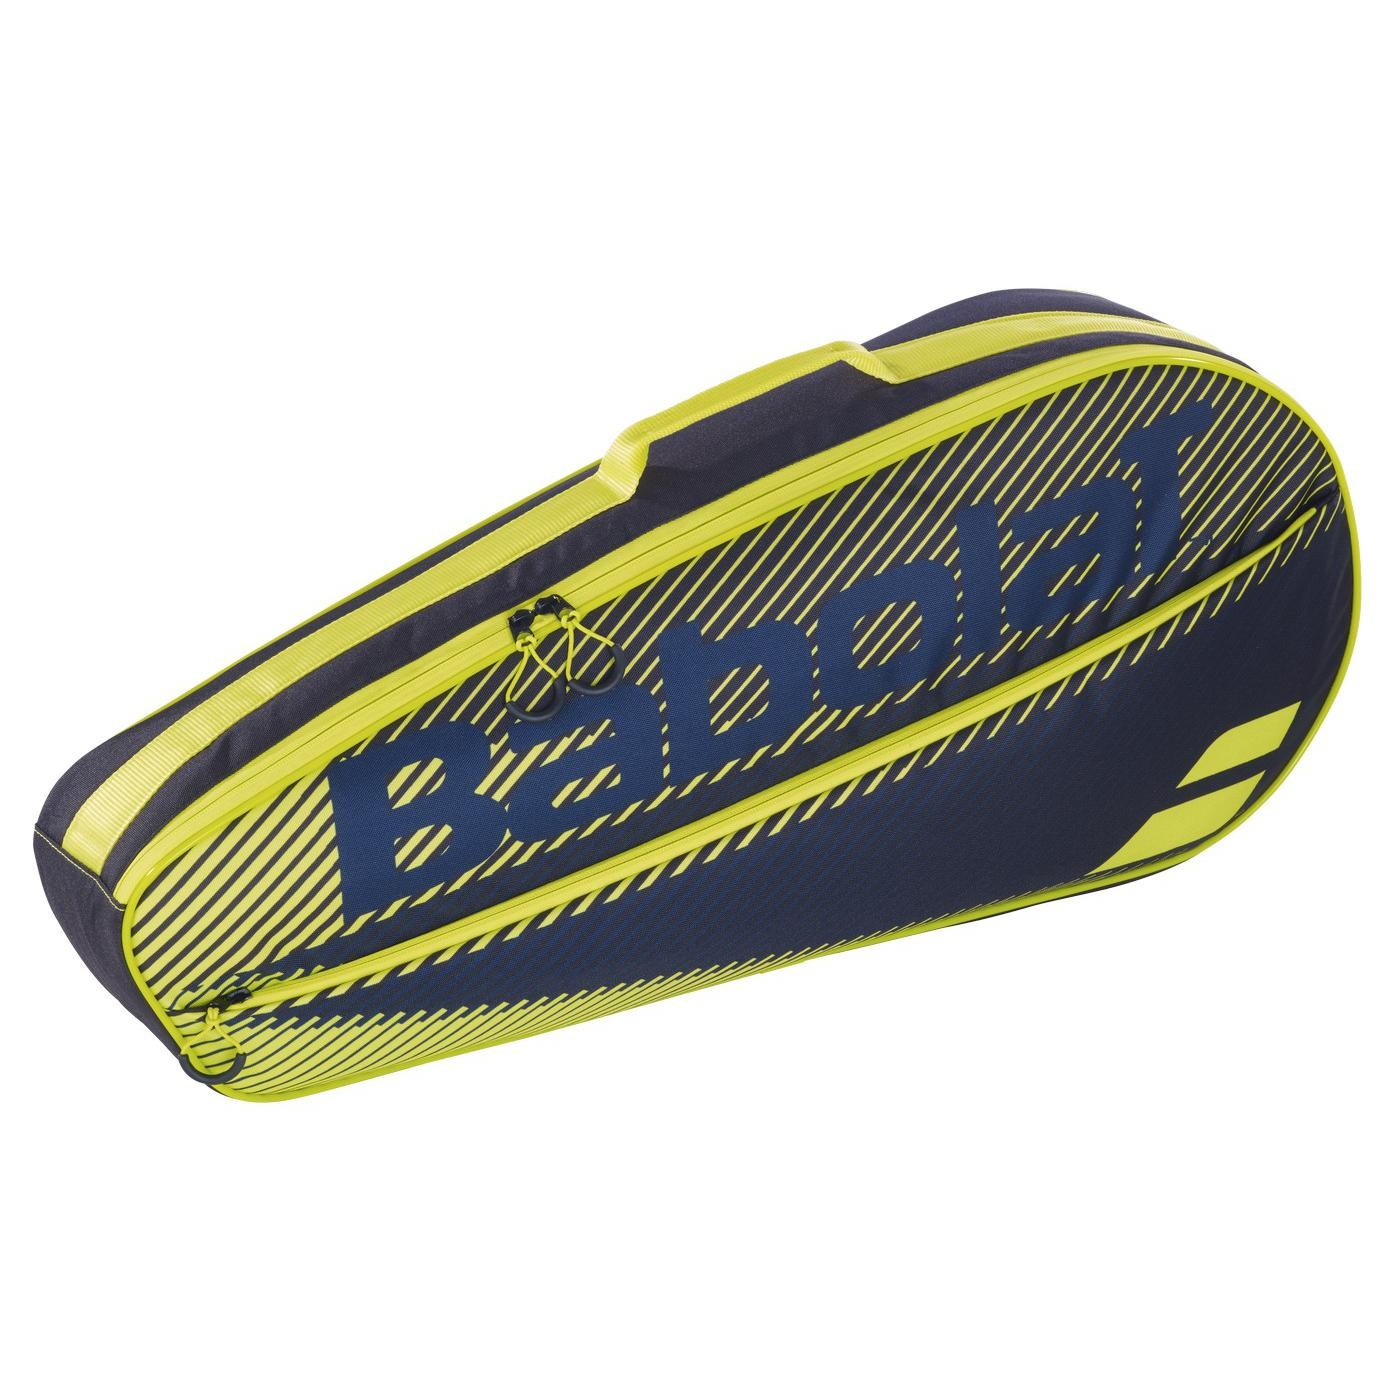 Torba tenisowa Babolat Club x3 Yellow